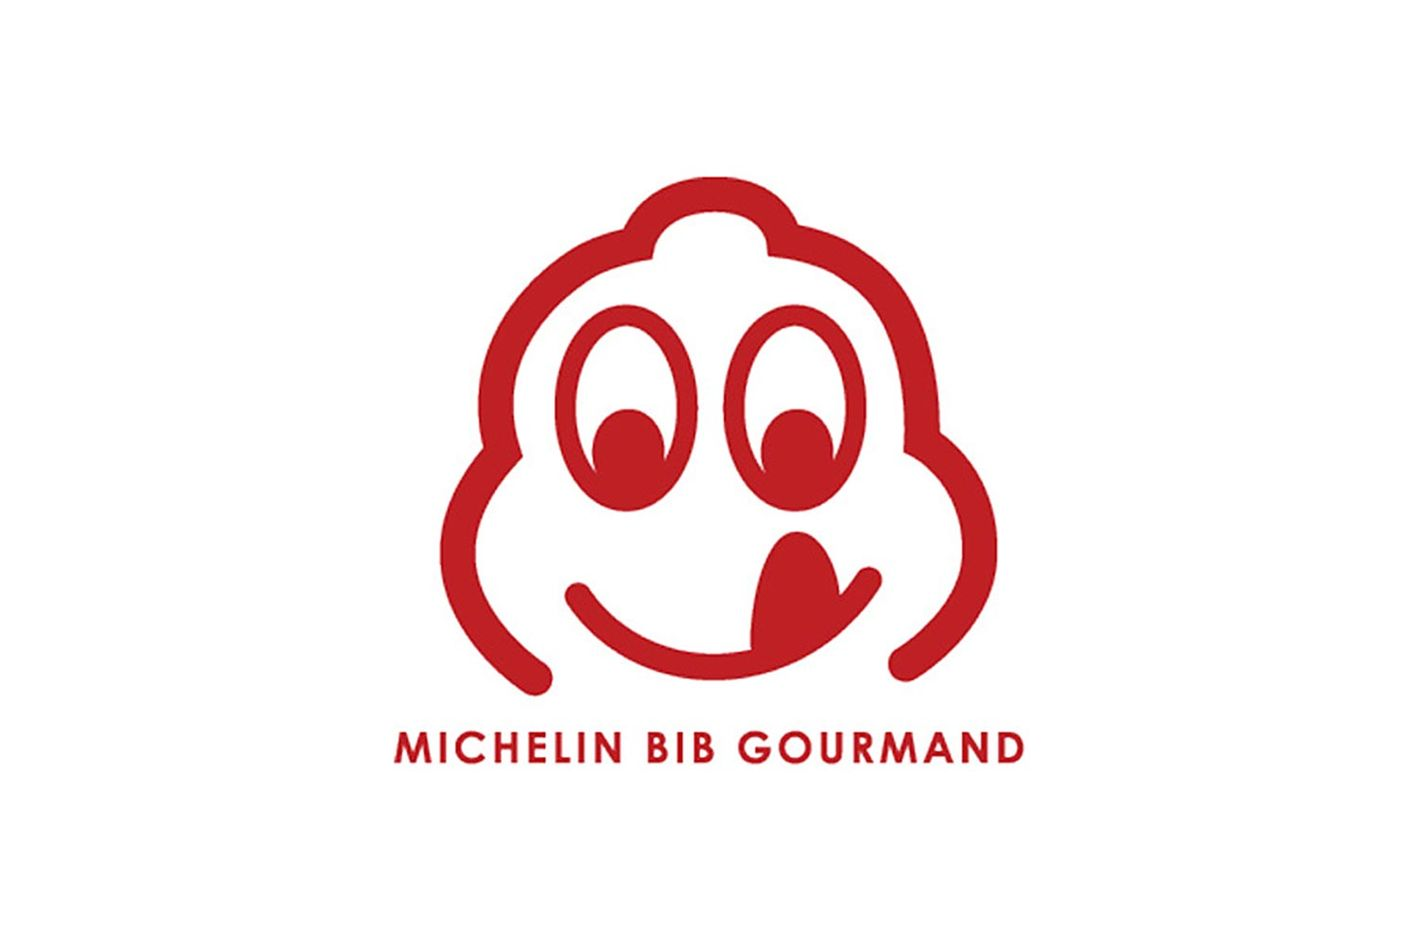 Here Are the 2016 Michelin Bib Gourmand Selections for New York City